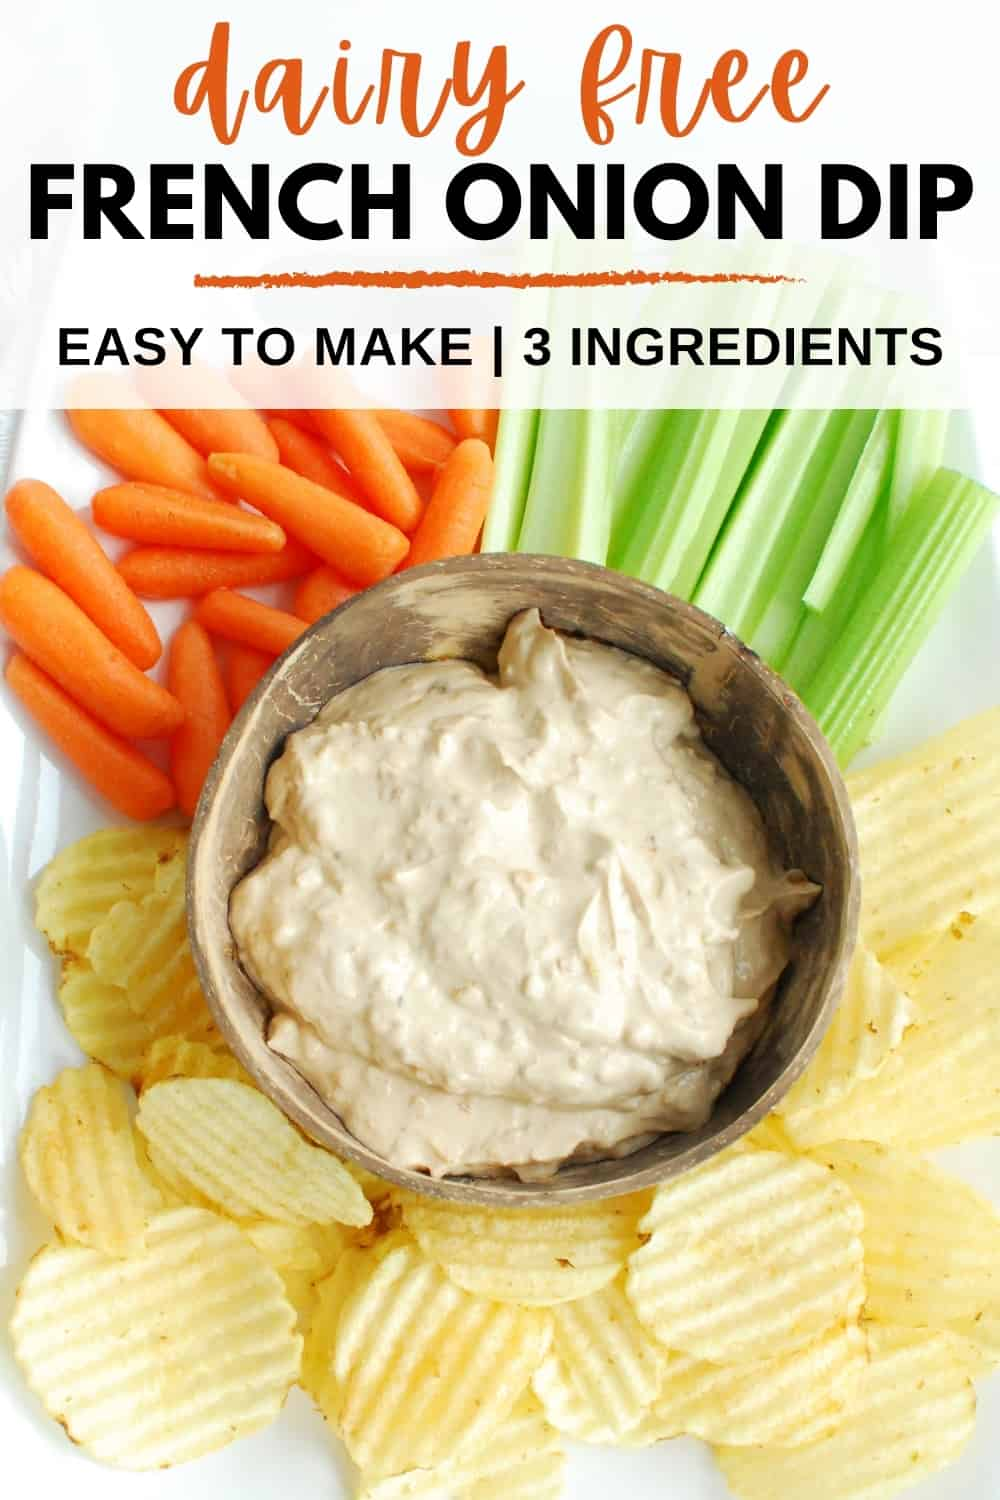 A bowl of dip next to potato chips, carrots, and celery, with a text overlay that says dairy free french onion dip.